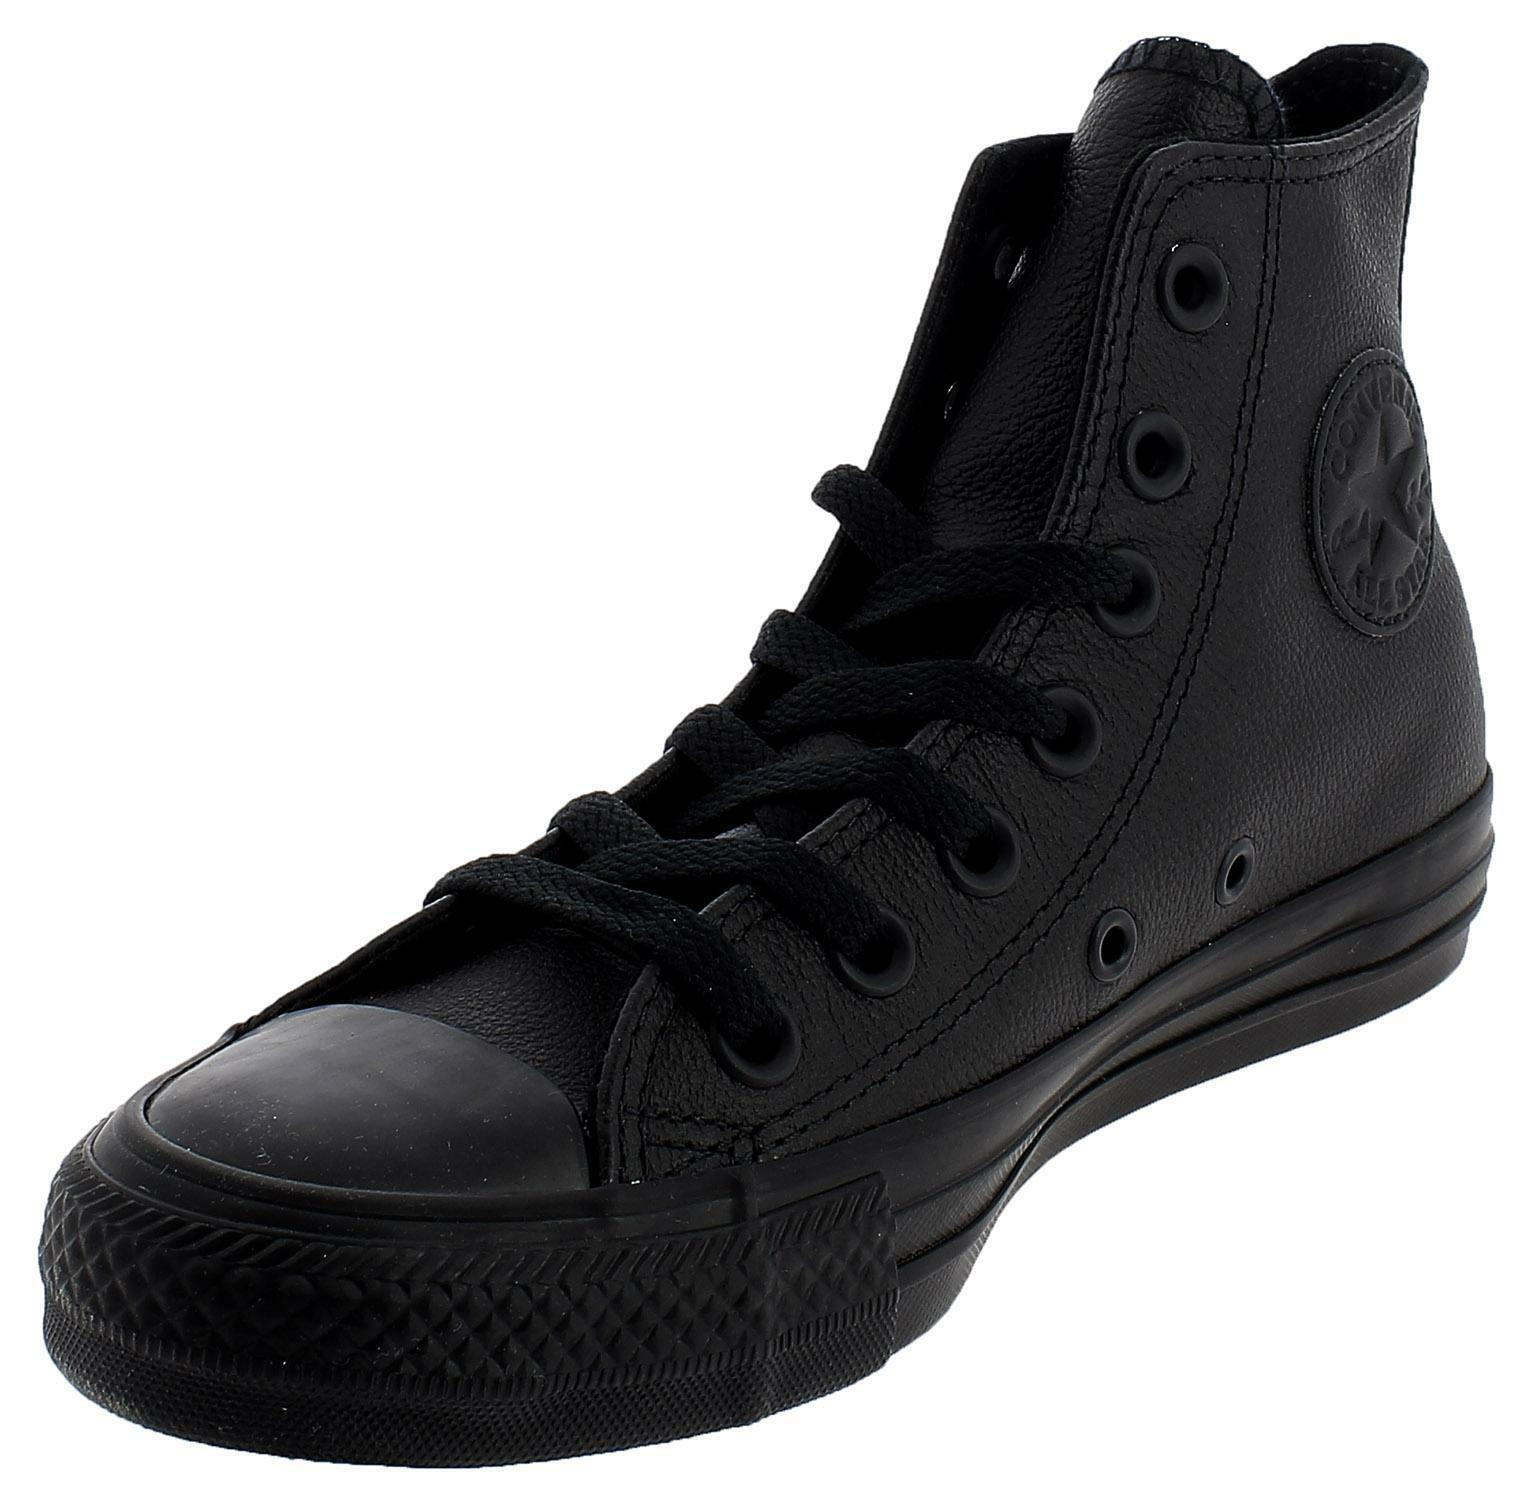 converse all star nere pelle